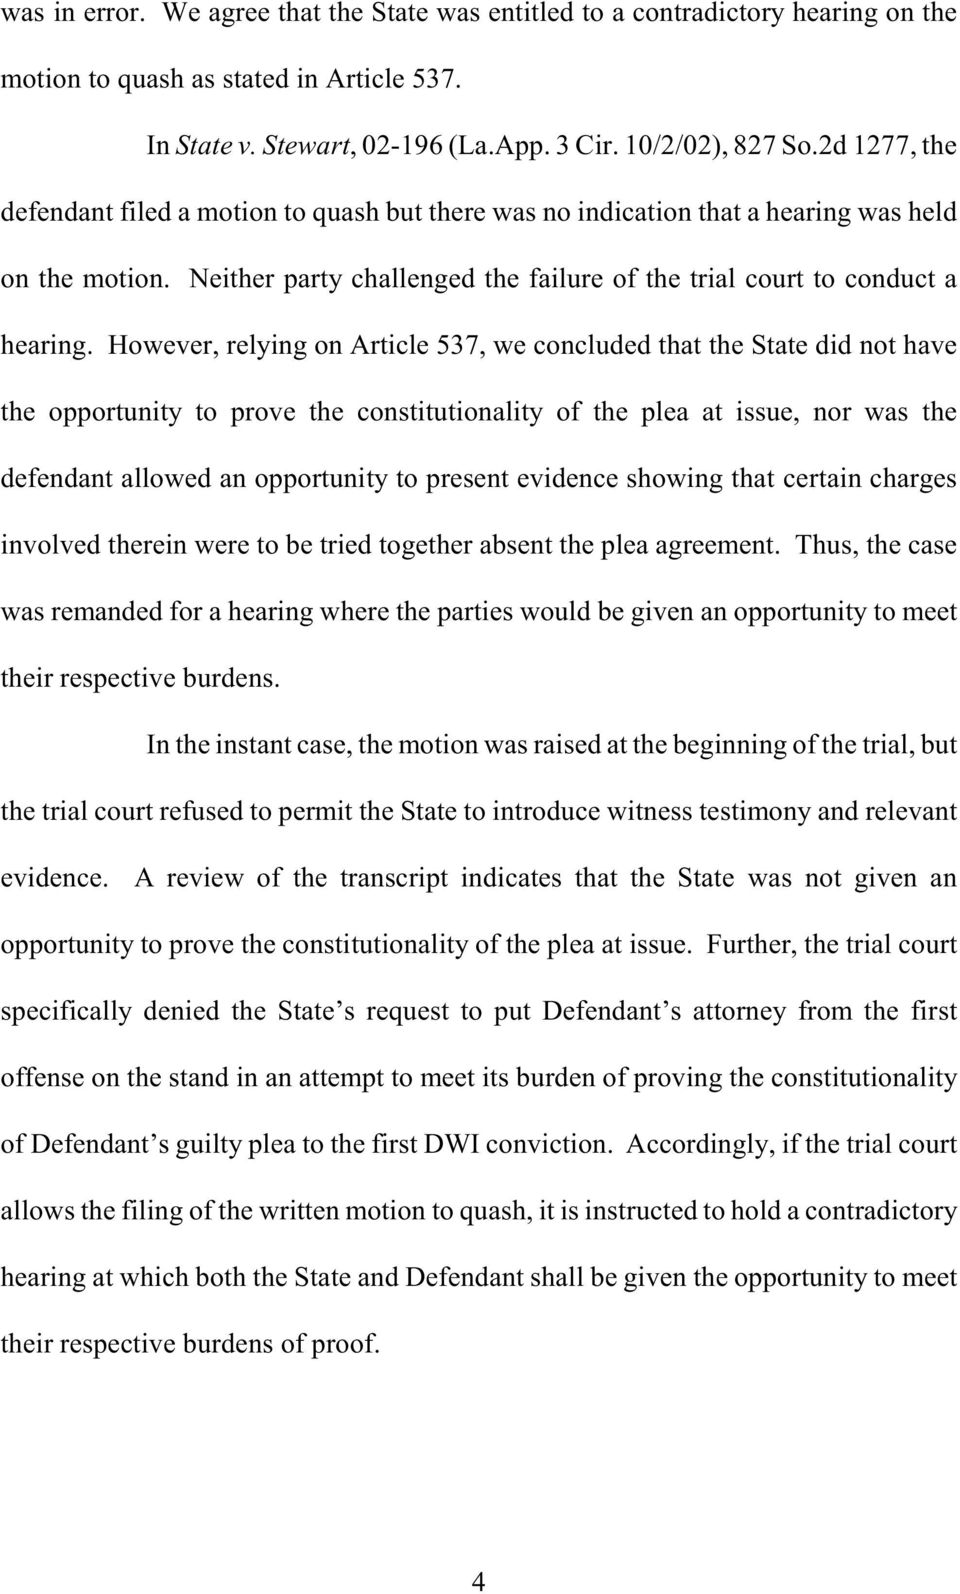 However, relying on Article 537, we concluded that the State did not have the opportunity to prove the constitutionality of the plea at issue, nor was the defendant allowed an opportunity to present